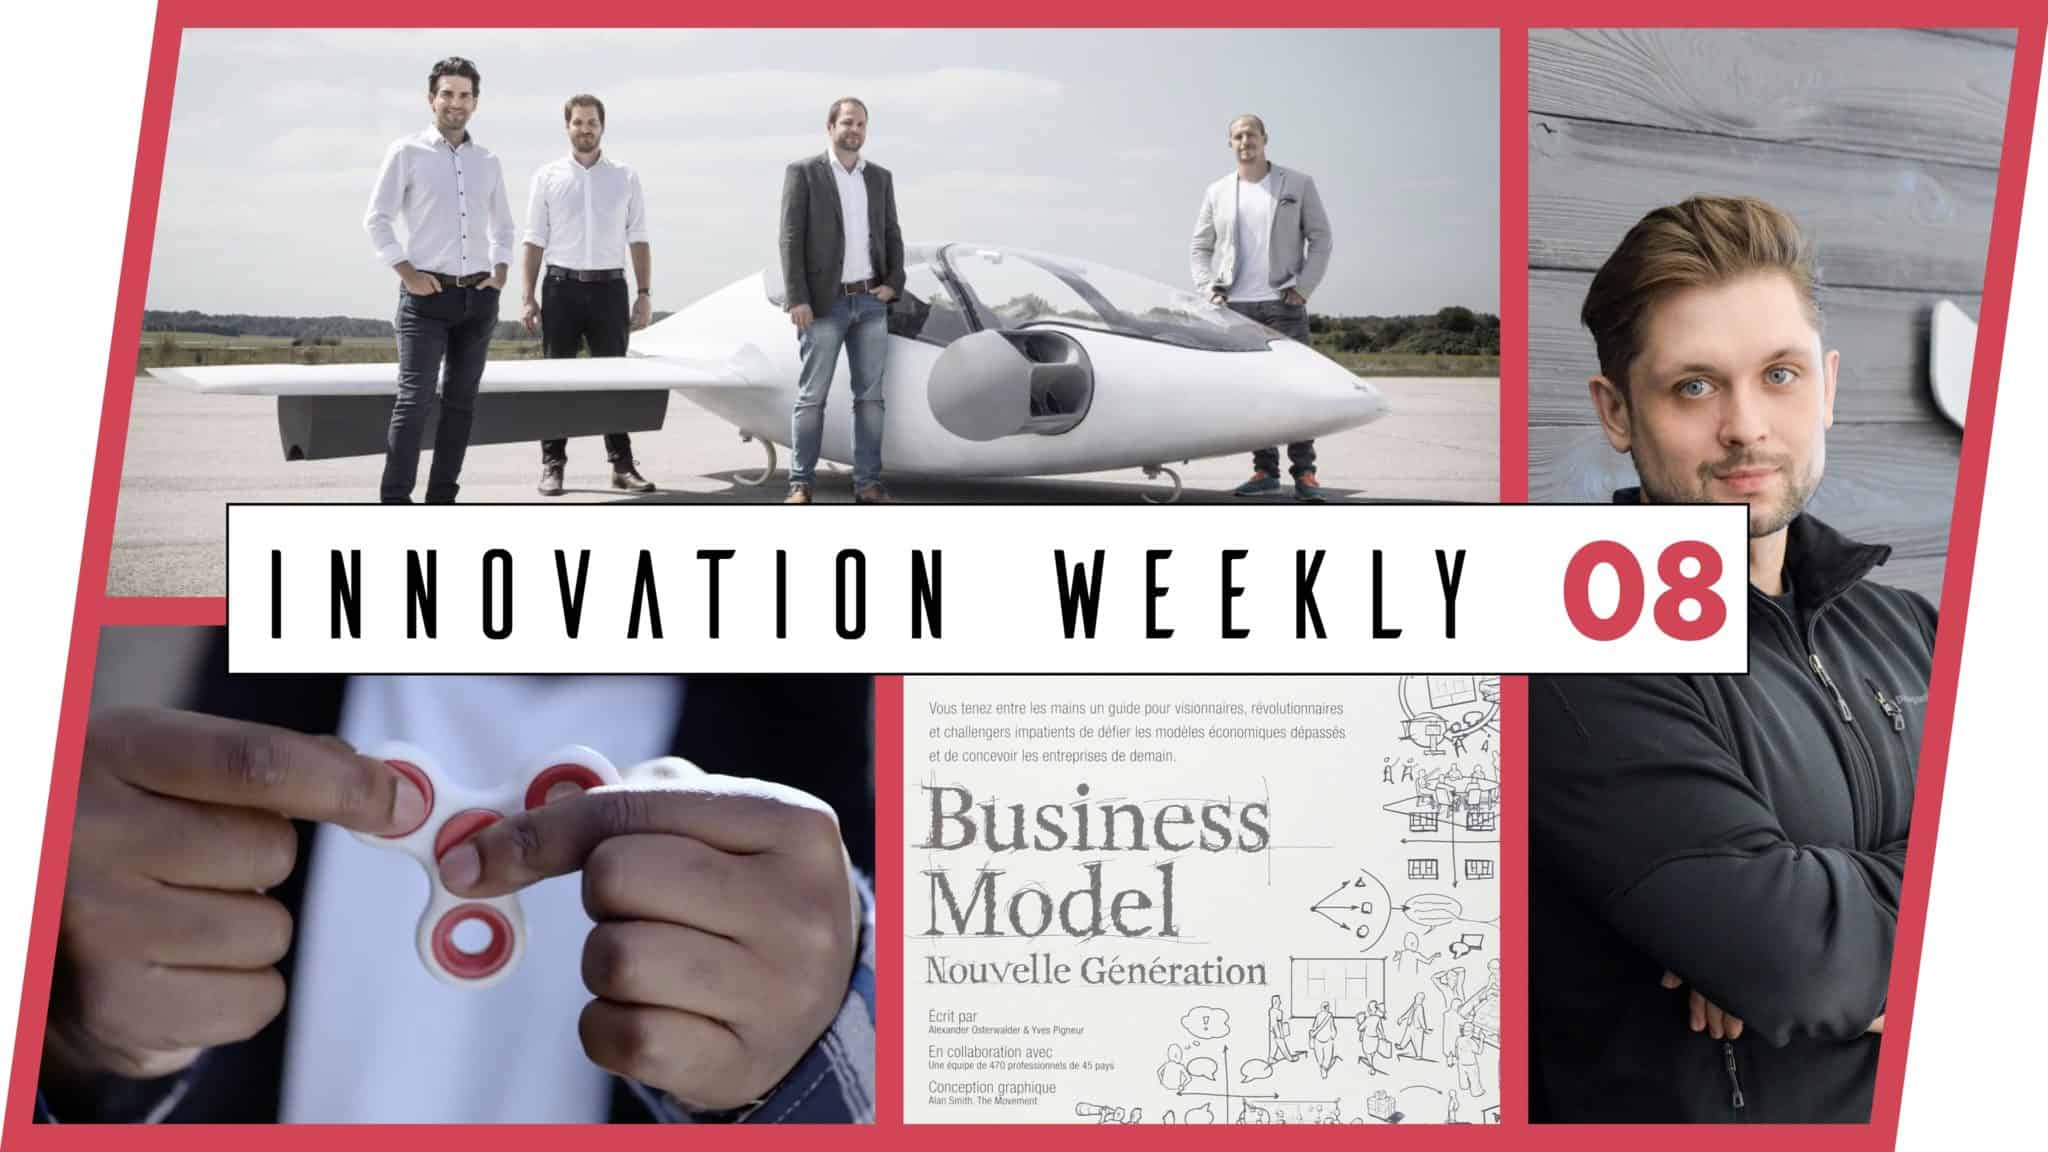 innovation weekly 08.001